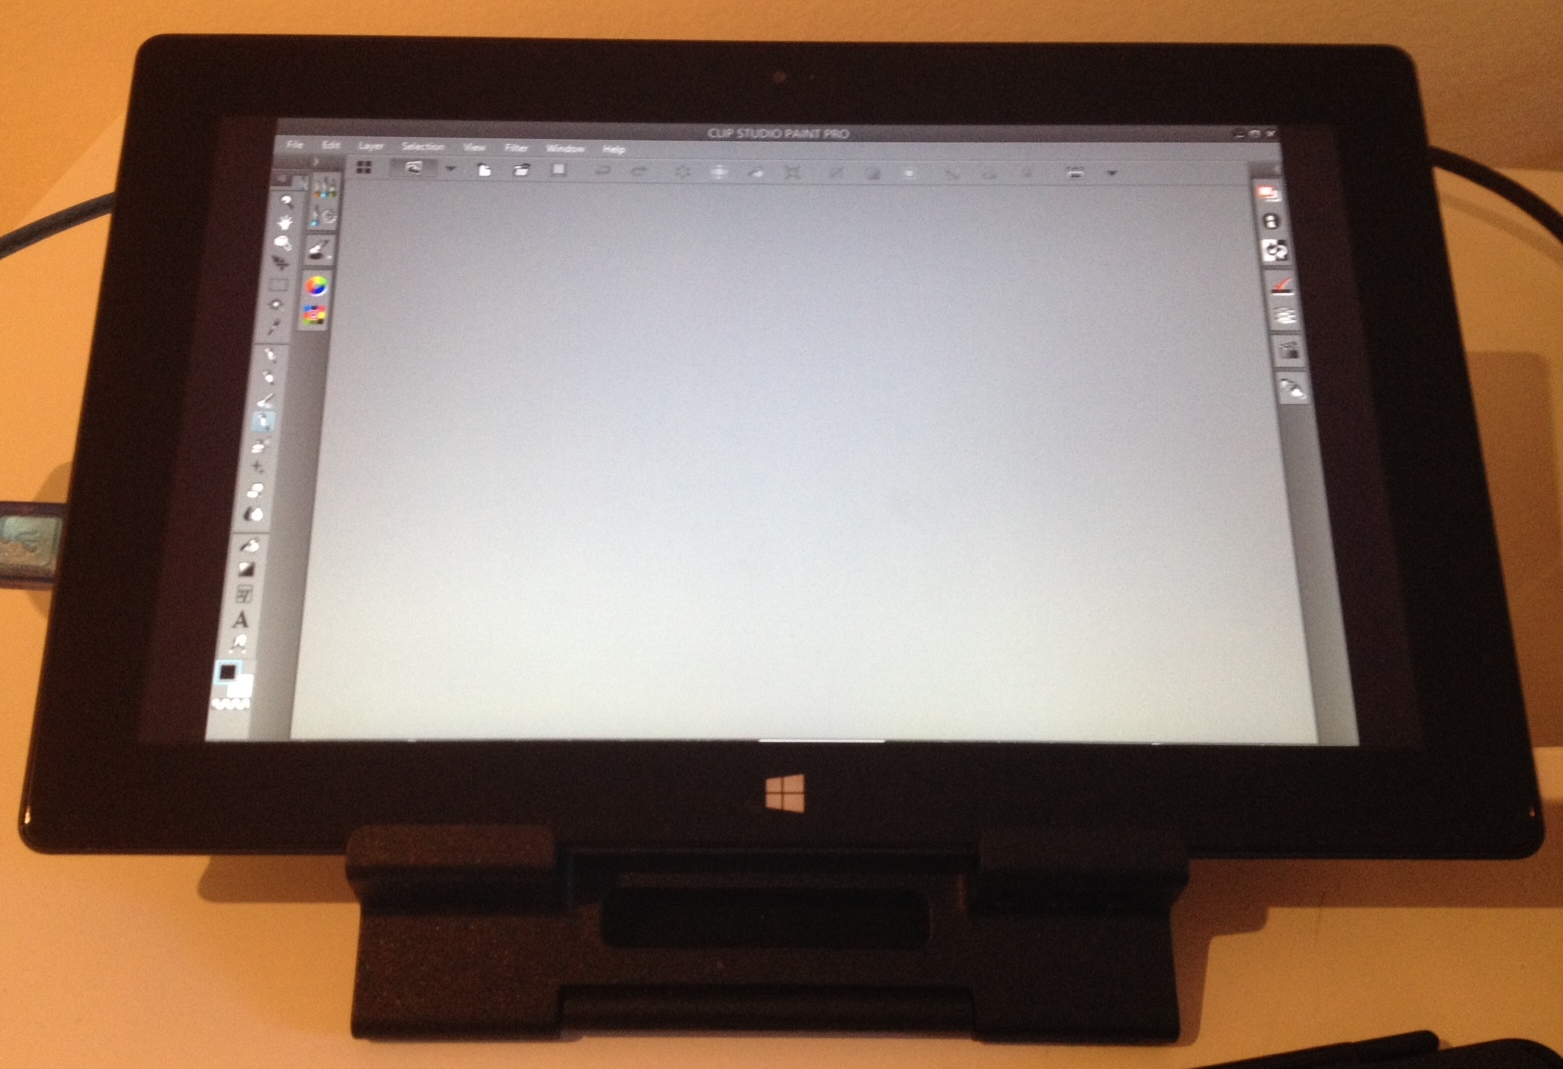 On the Surface Pro screen above, note how the color is uniform from top of the display to the bottom.